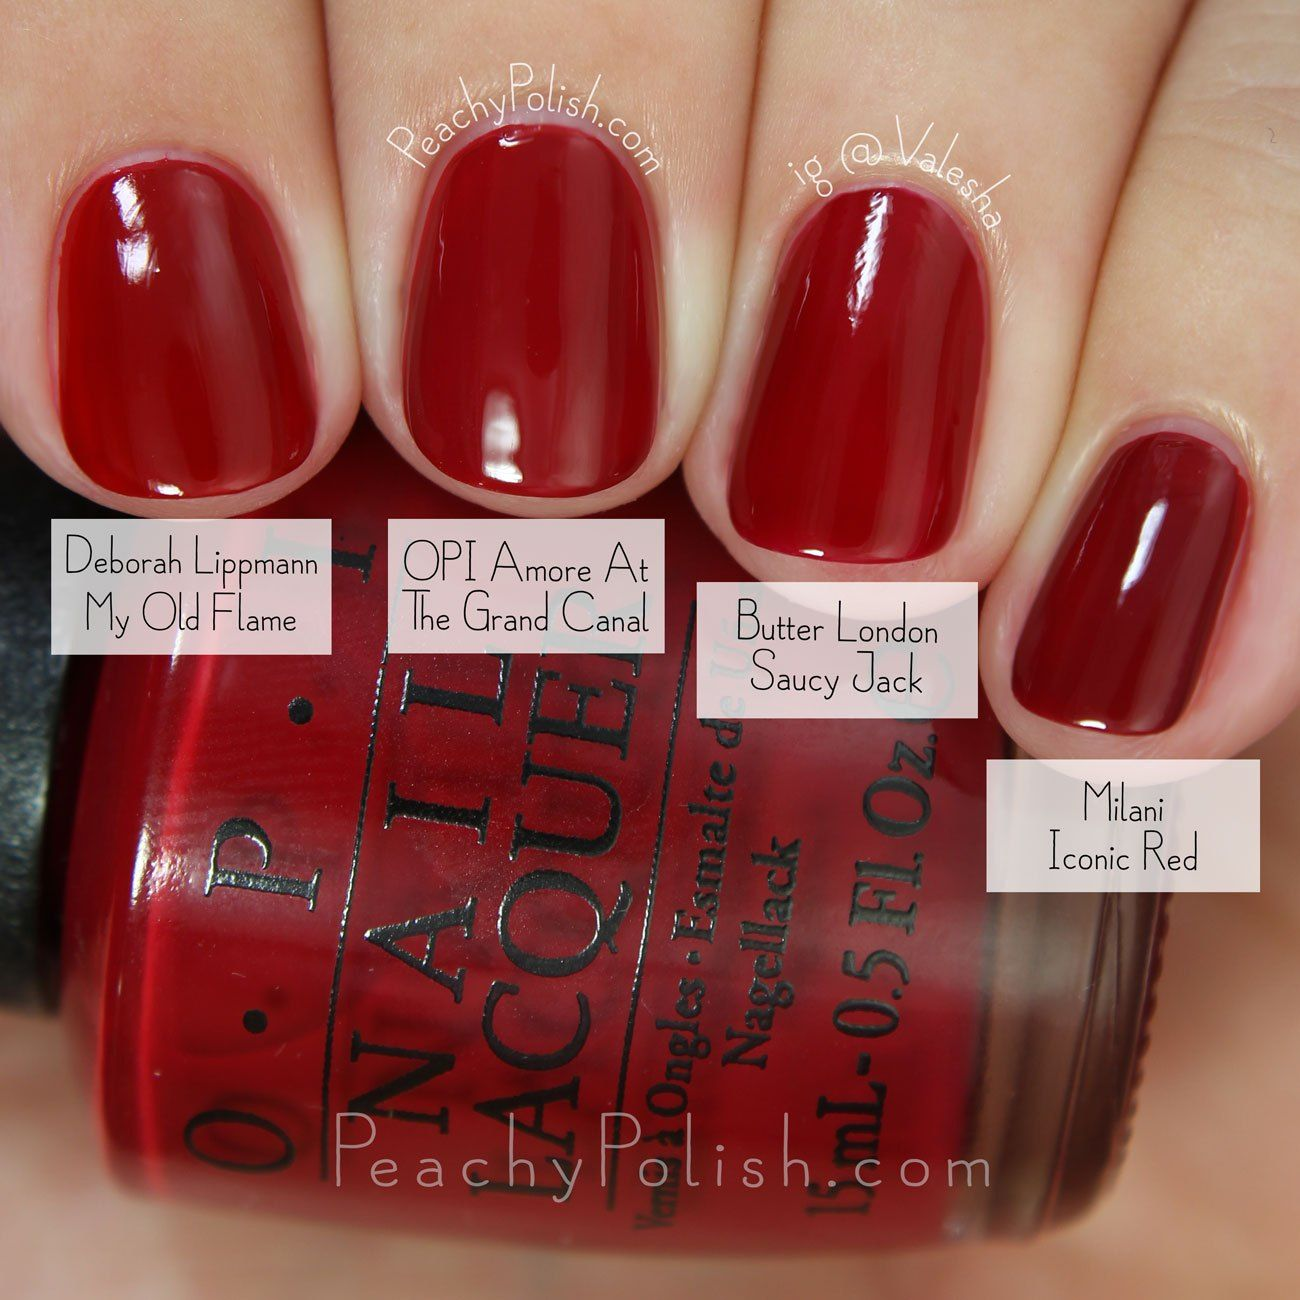 Opi Fall 2015 Venice Collection Comparisons With Images Nail